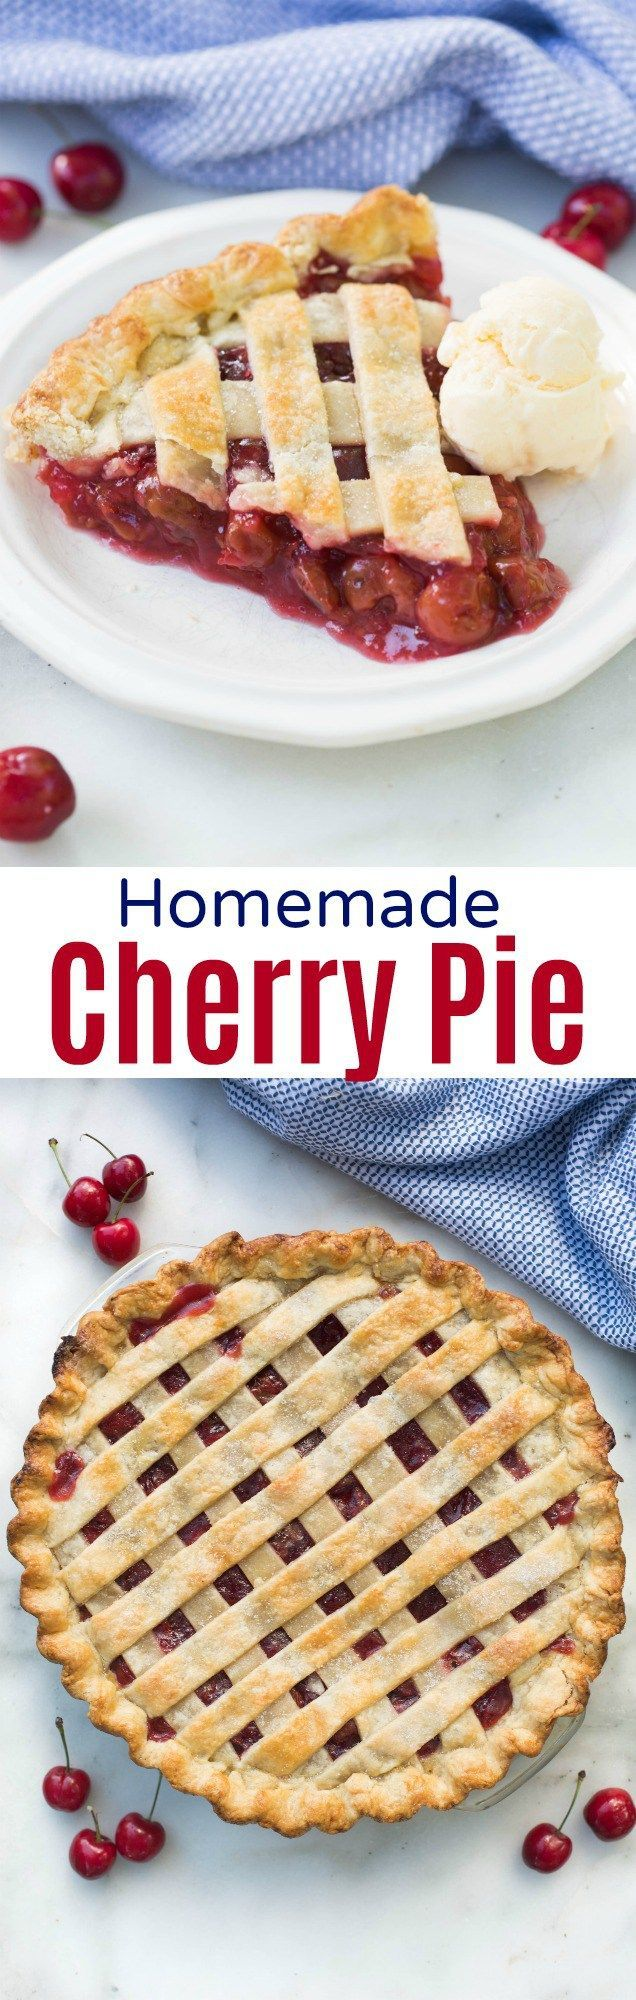 A homemade cherry pie recipe that you can make any time of year! Ditch the canned stuff for this easy and DELICIOUS homemade cherry pie.